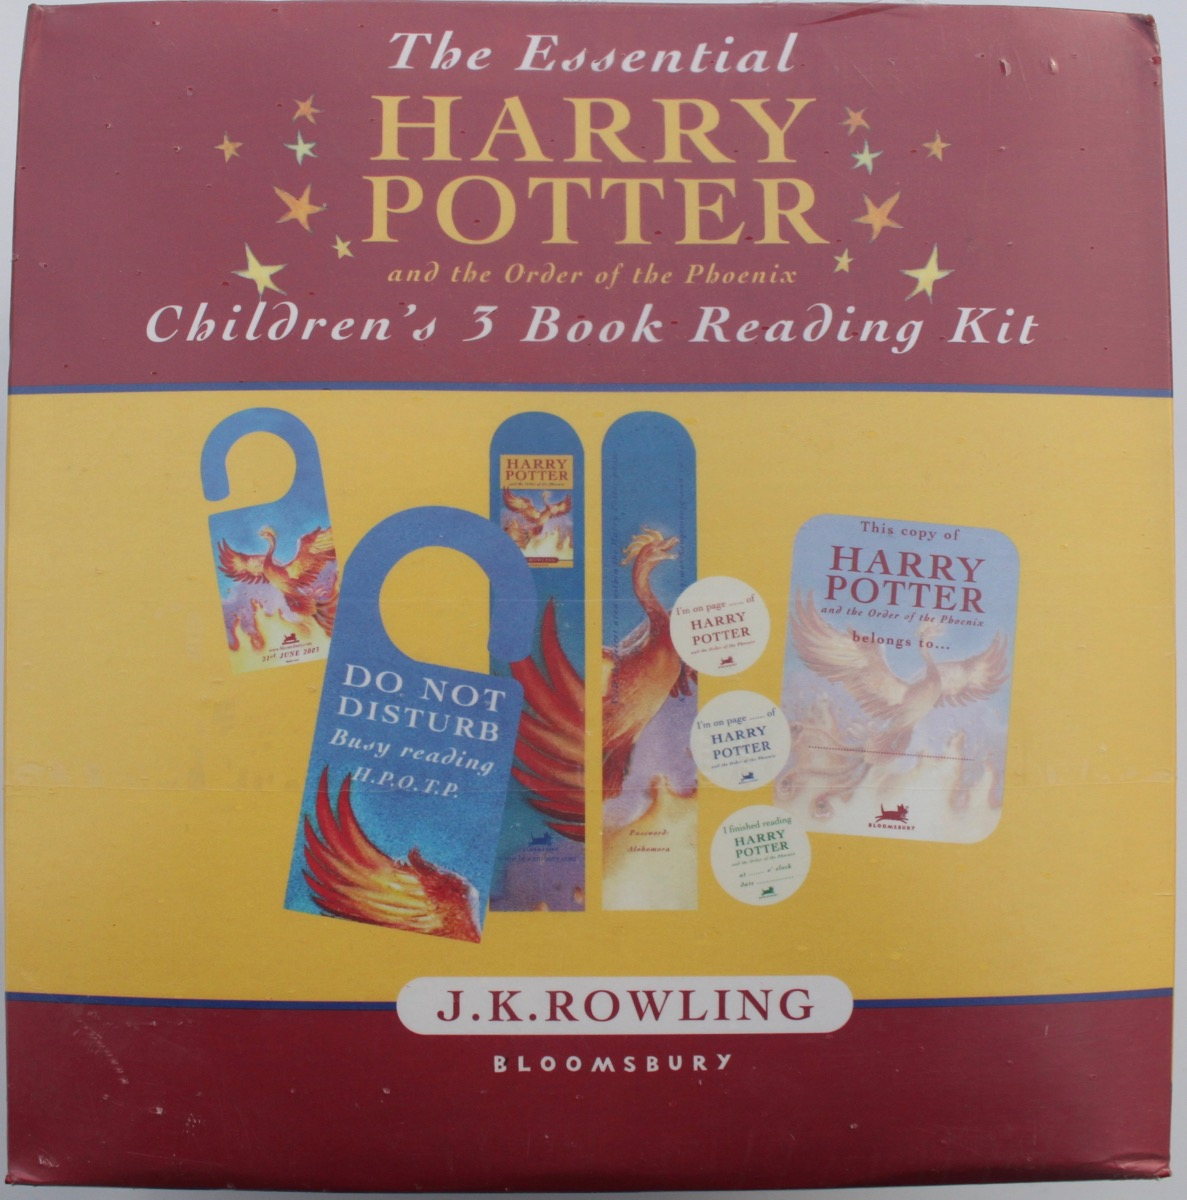 Image for The Essential Harry Potter and the Order of the Phoenix Children's 3 Book Reading Kit.